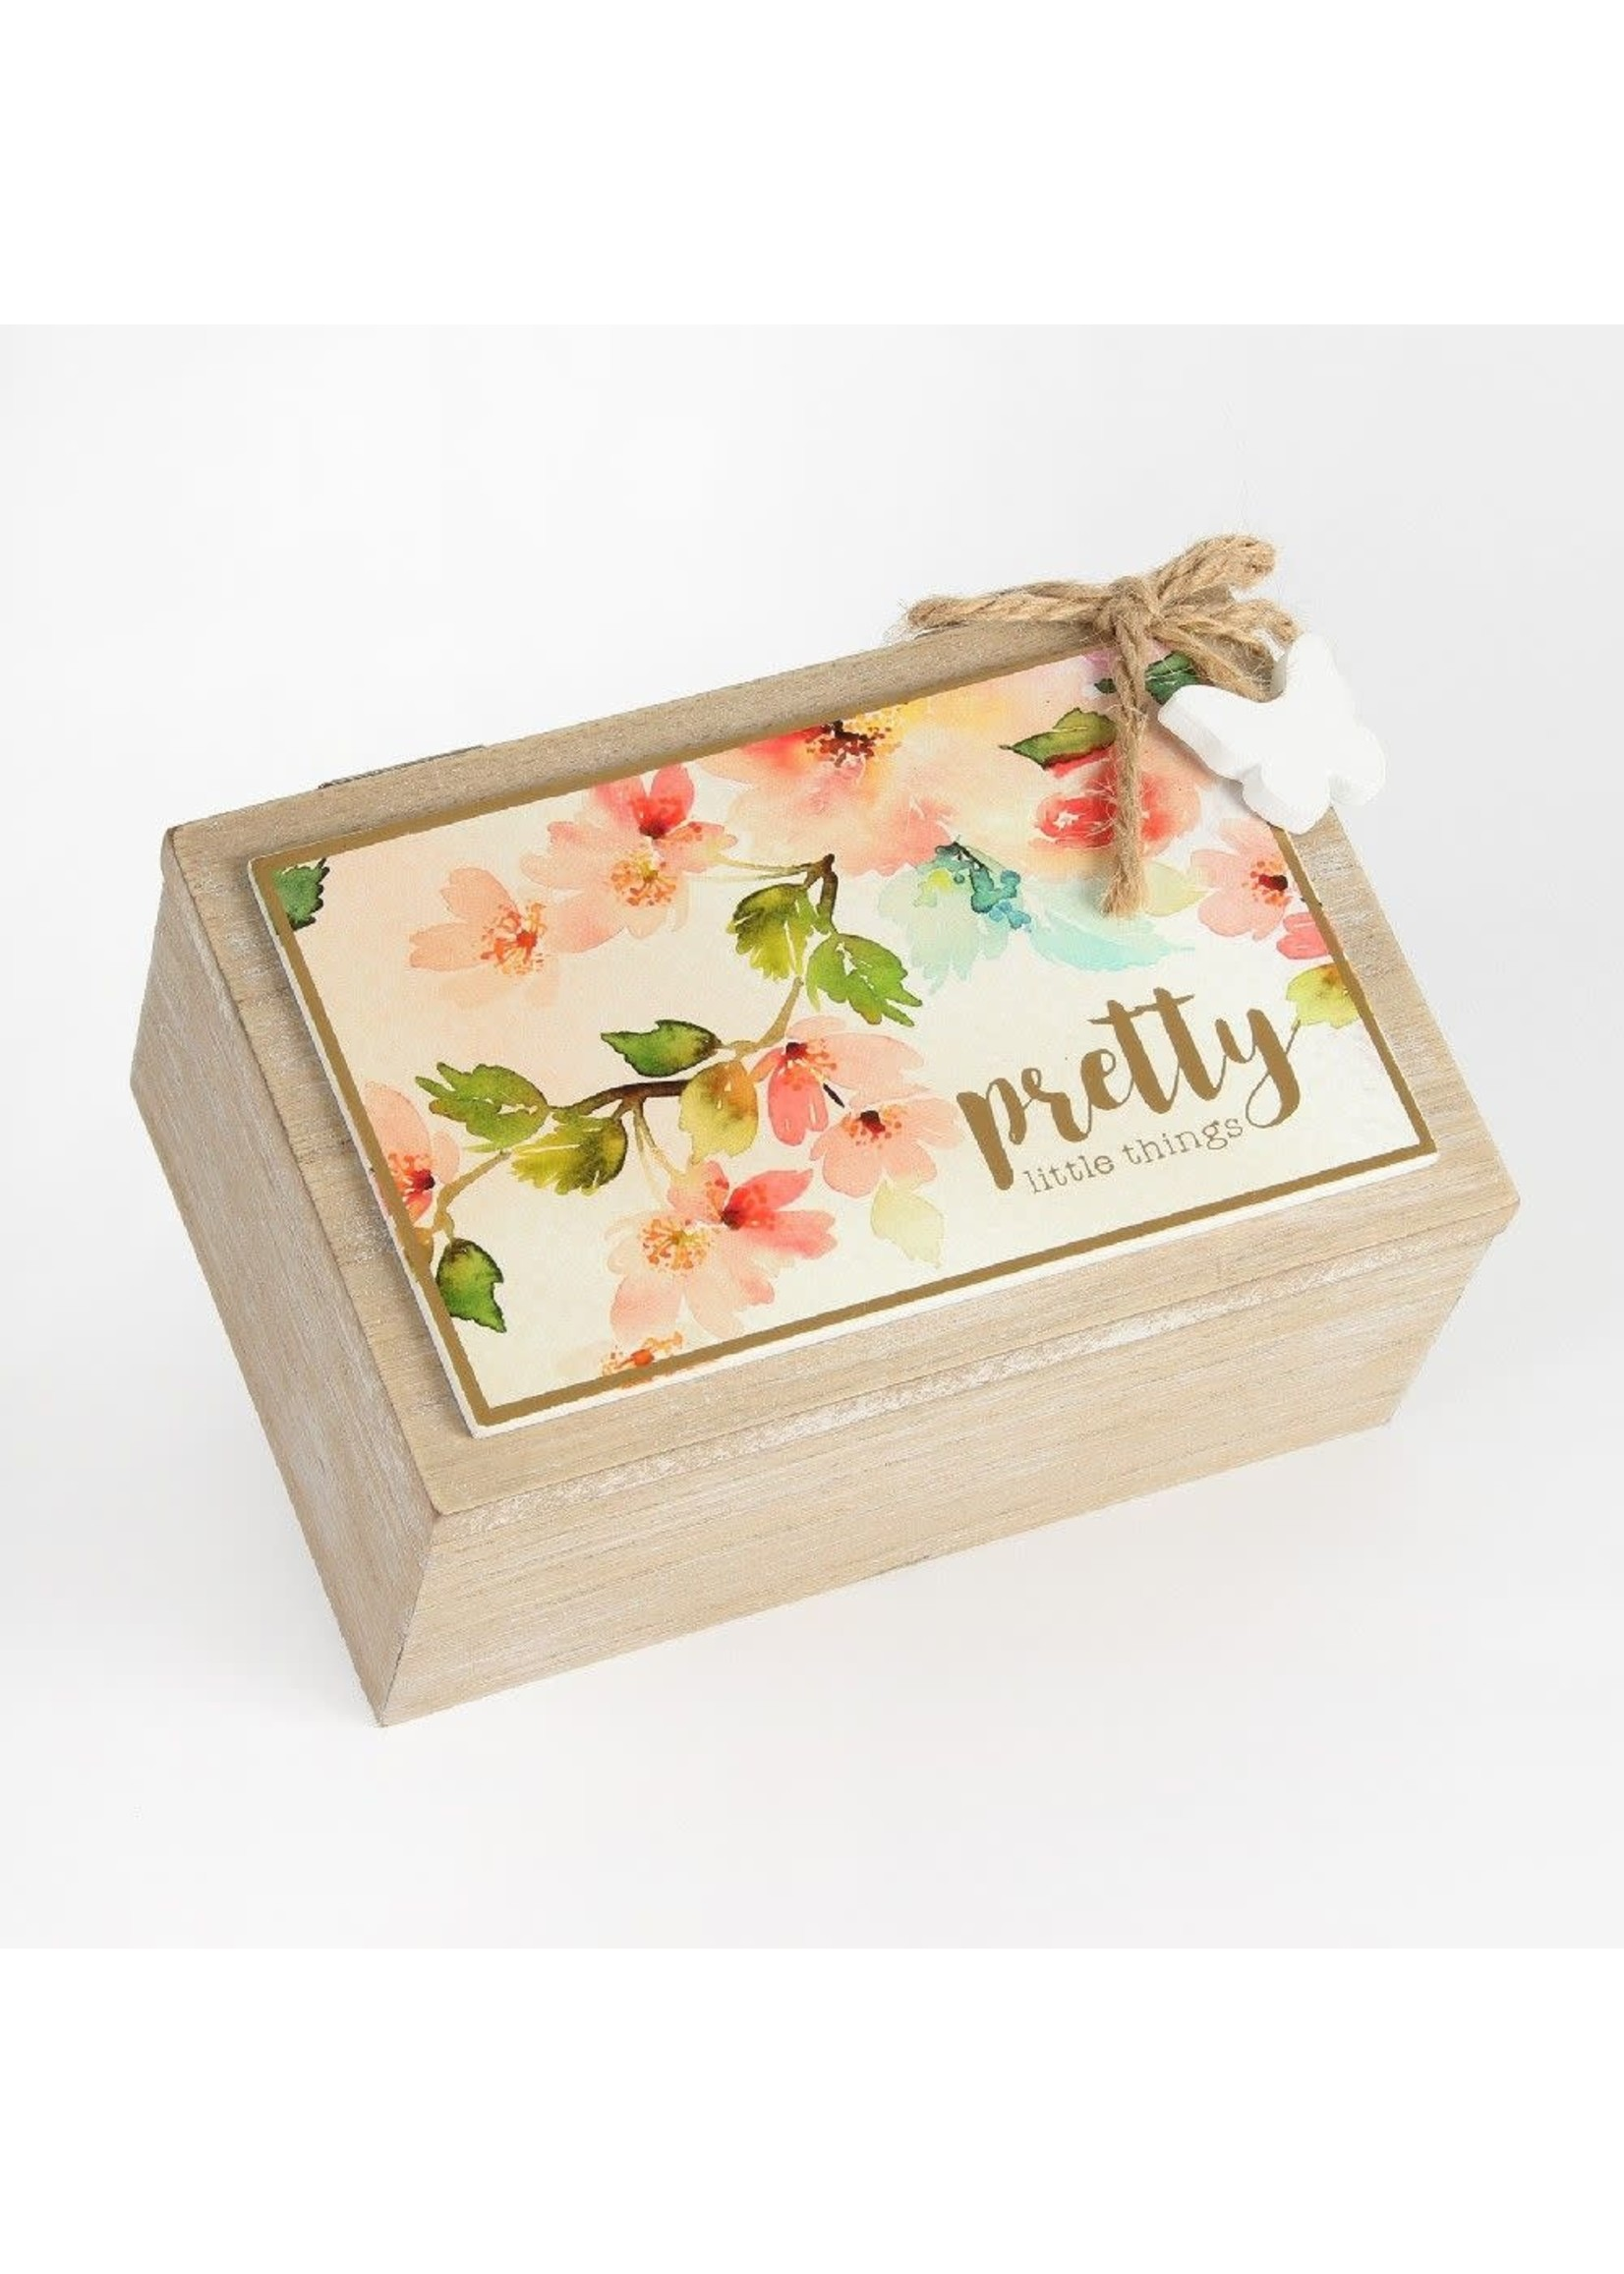 VINTAGE BOUTIQUE JEWELLERY BOX - PRETTY LITTLE THINGS